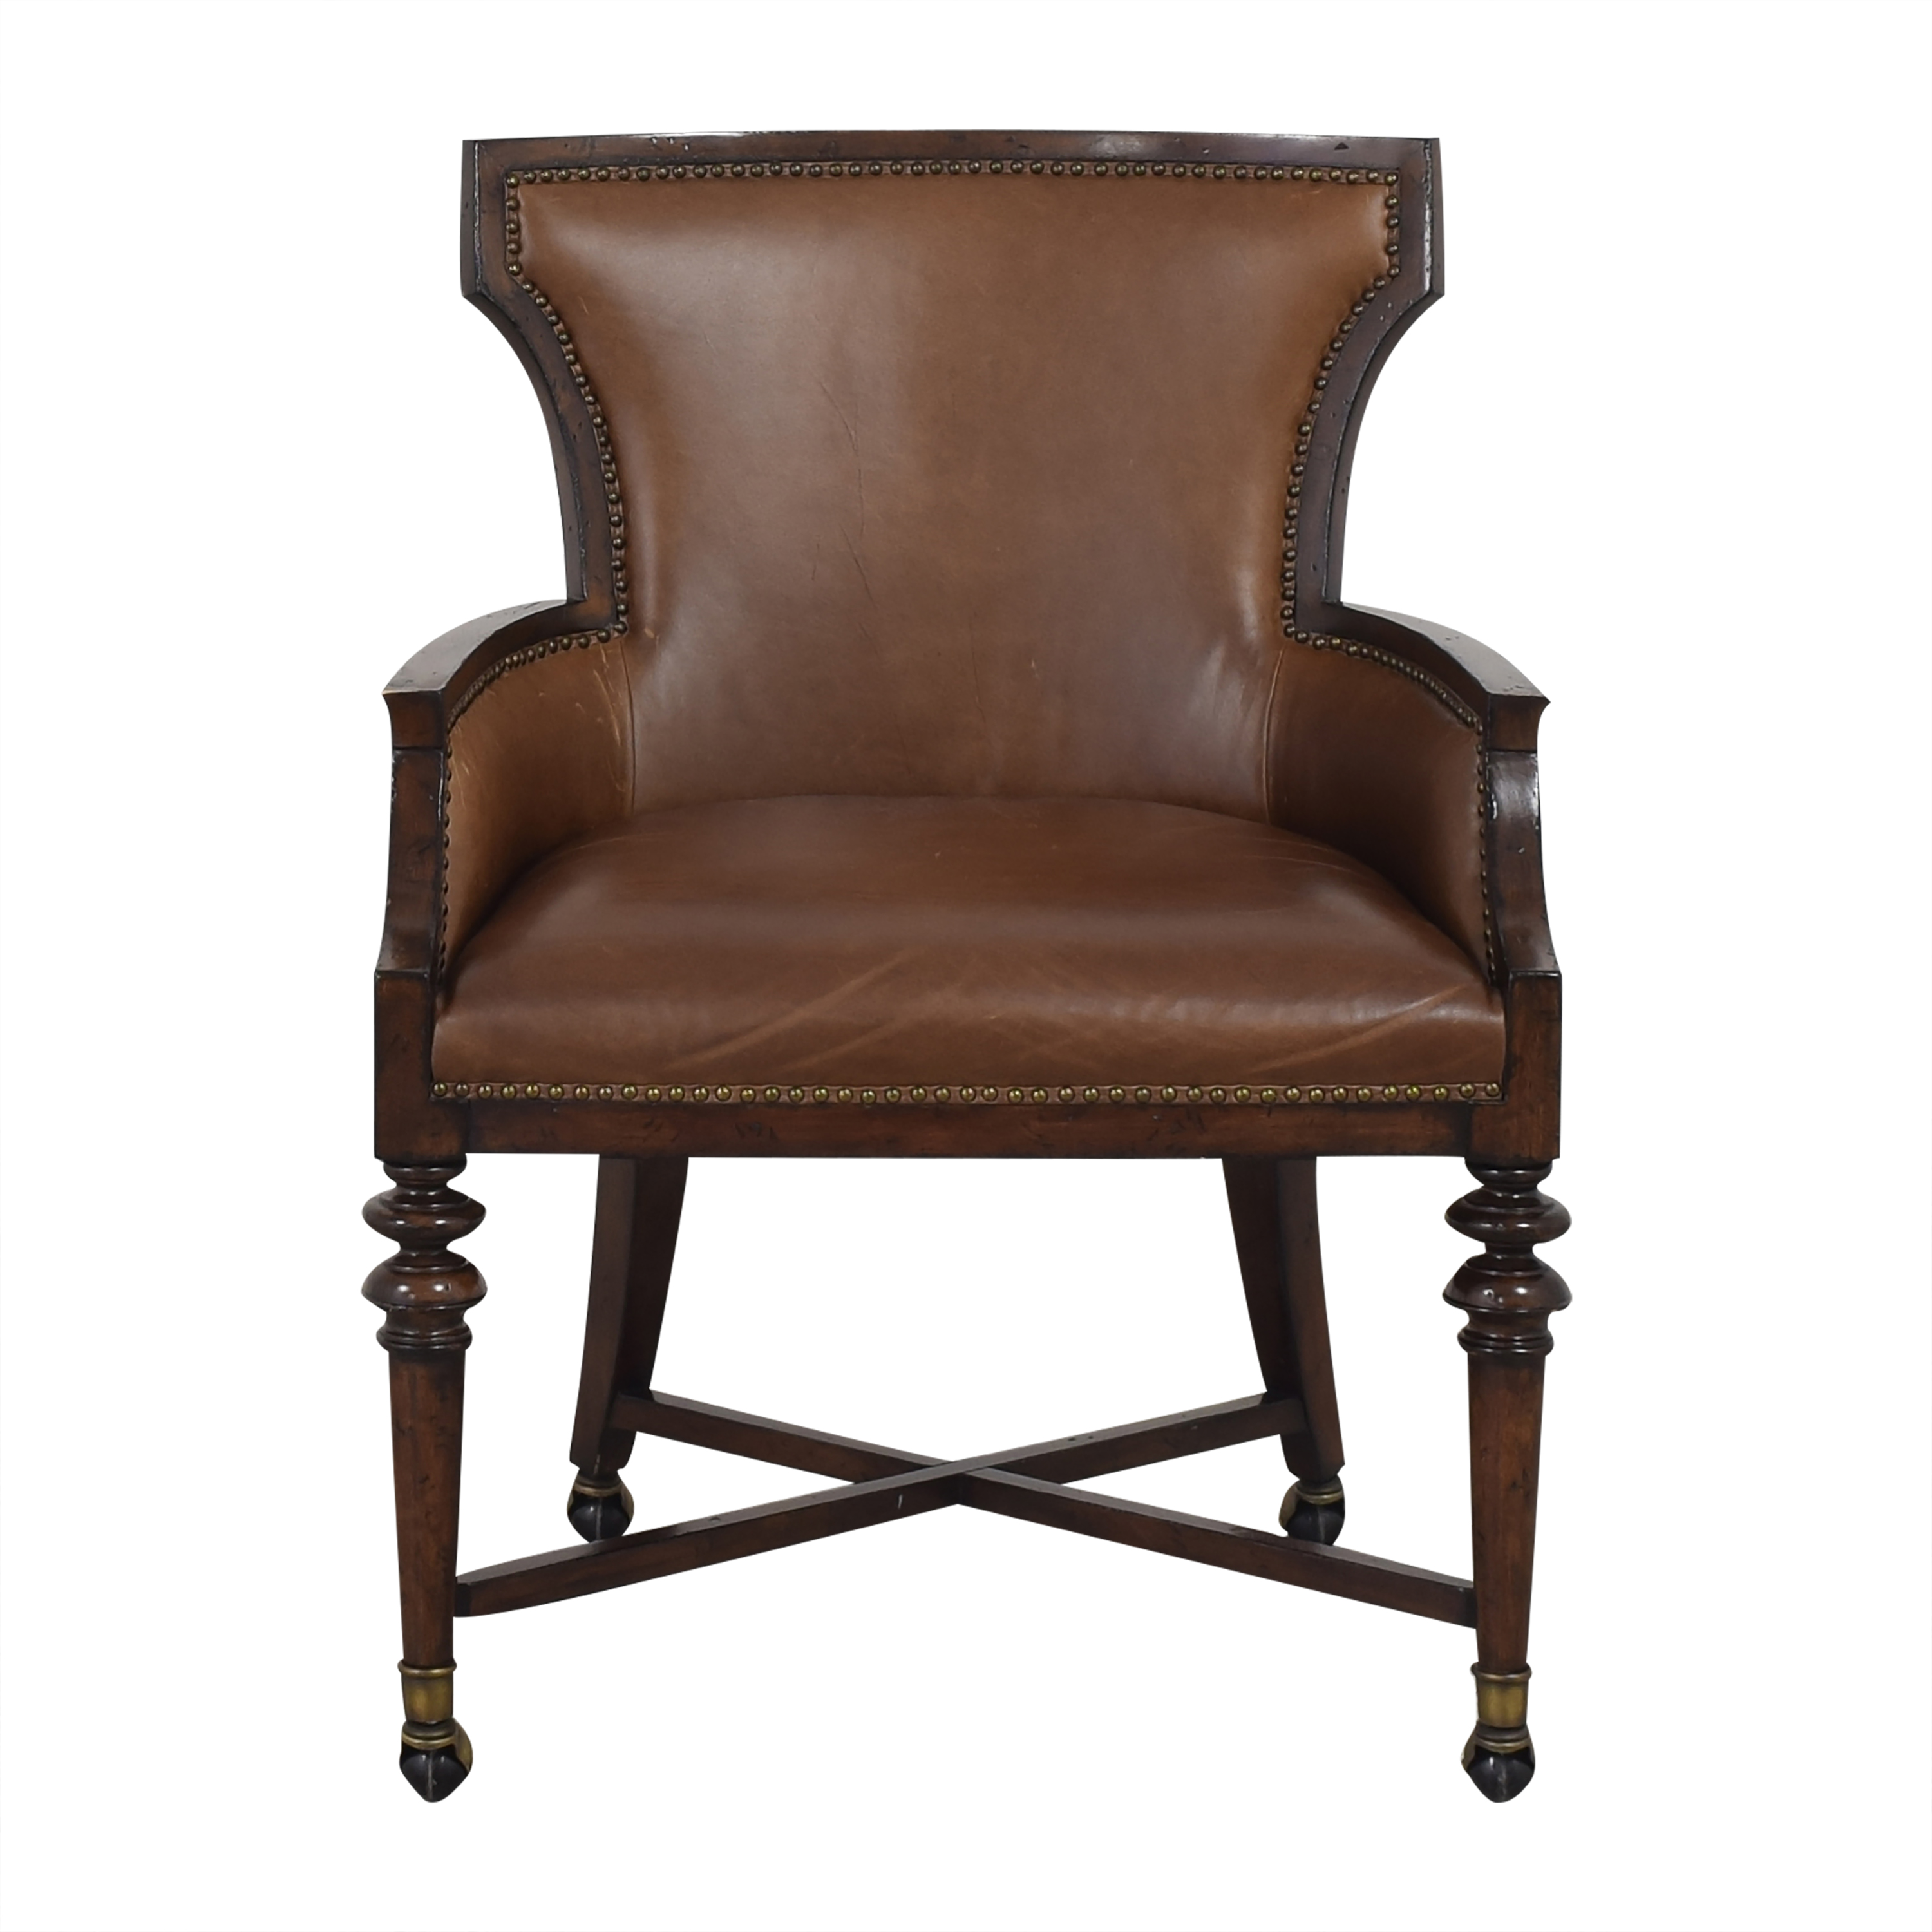 Lillian August Wingback Chair / Accent Chairs